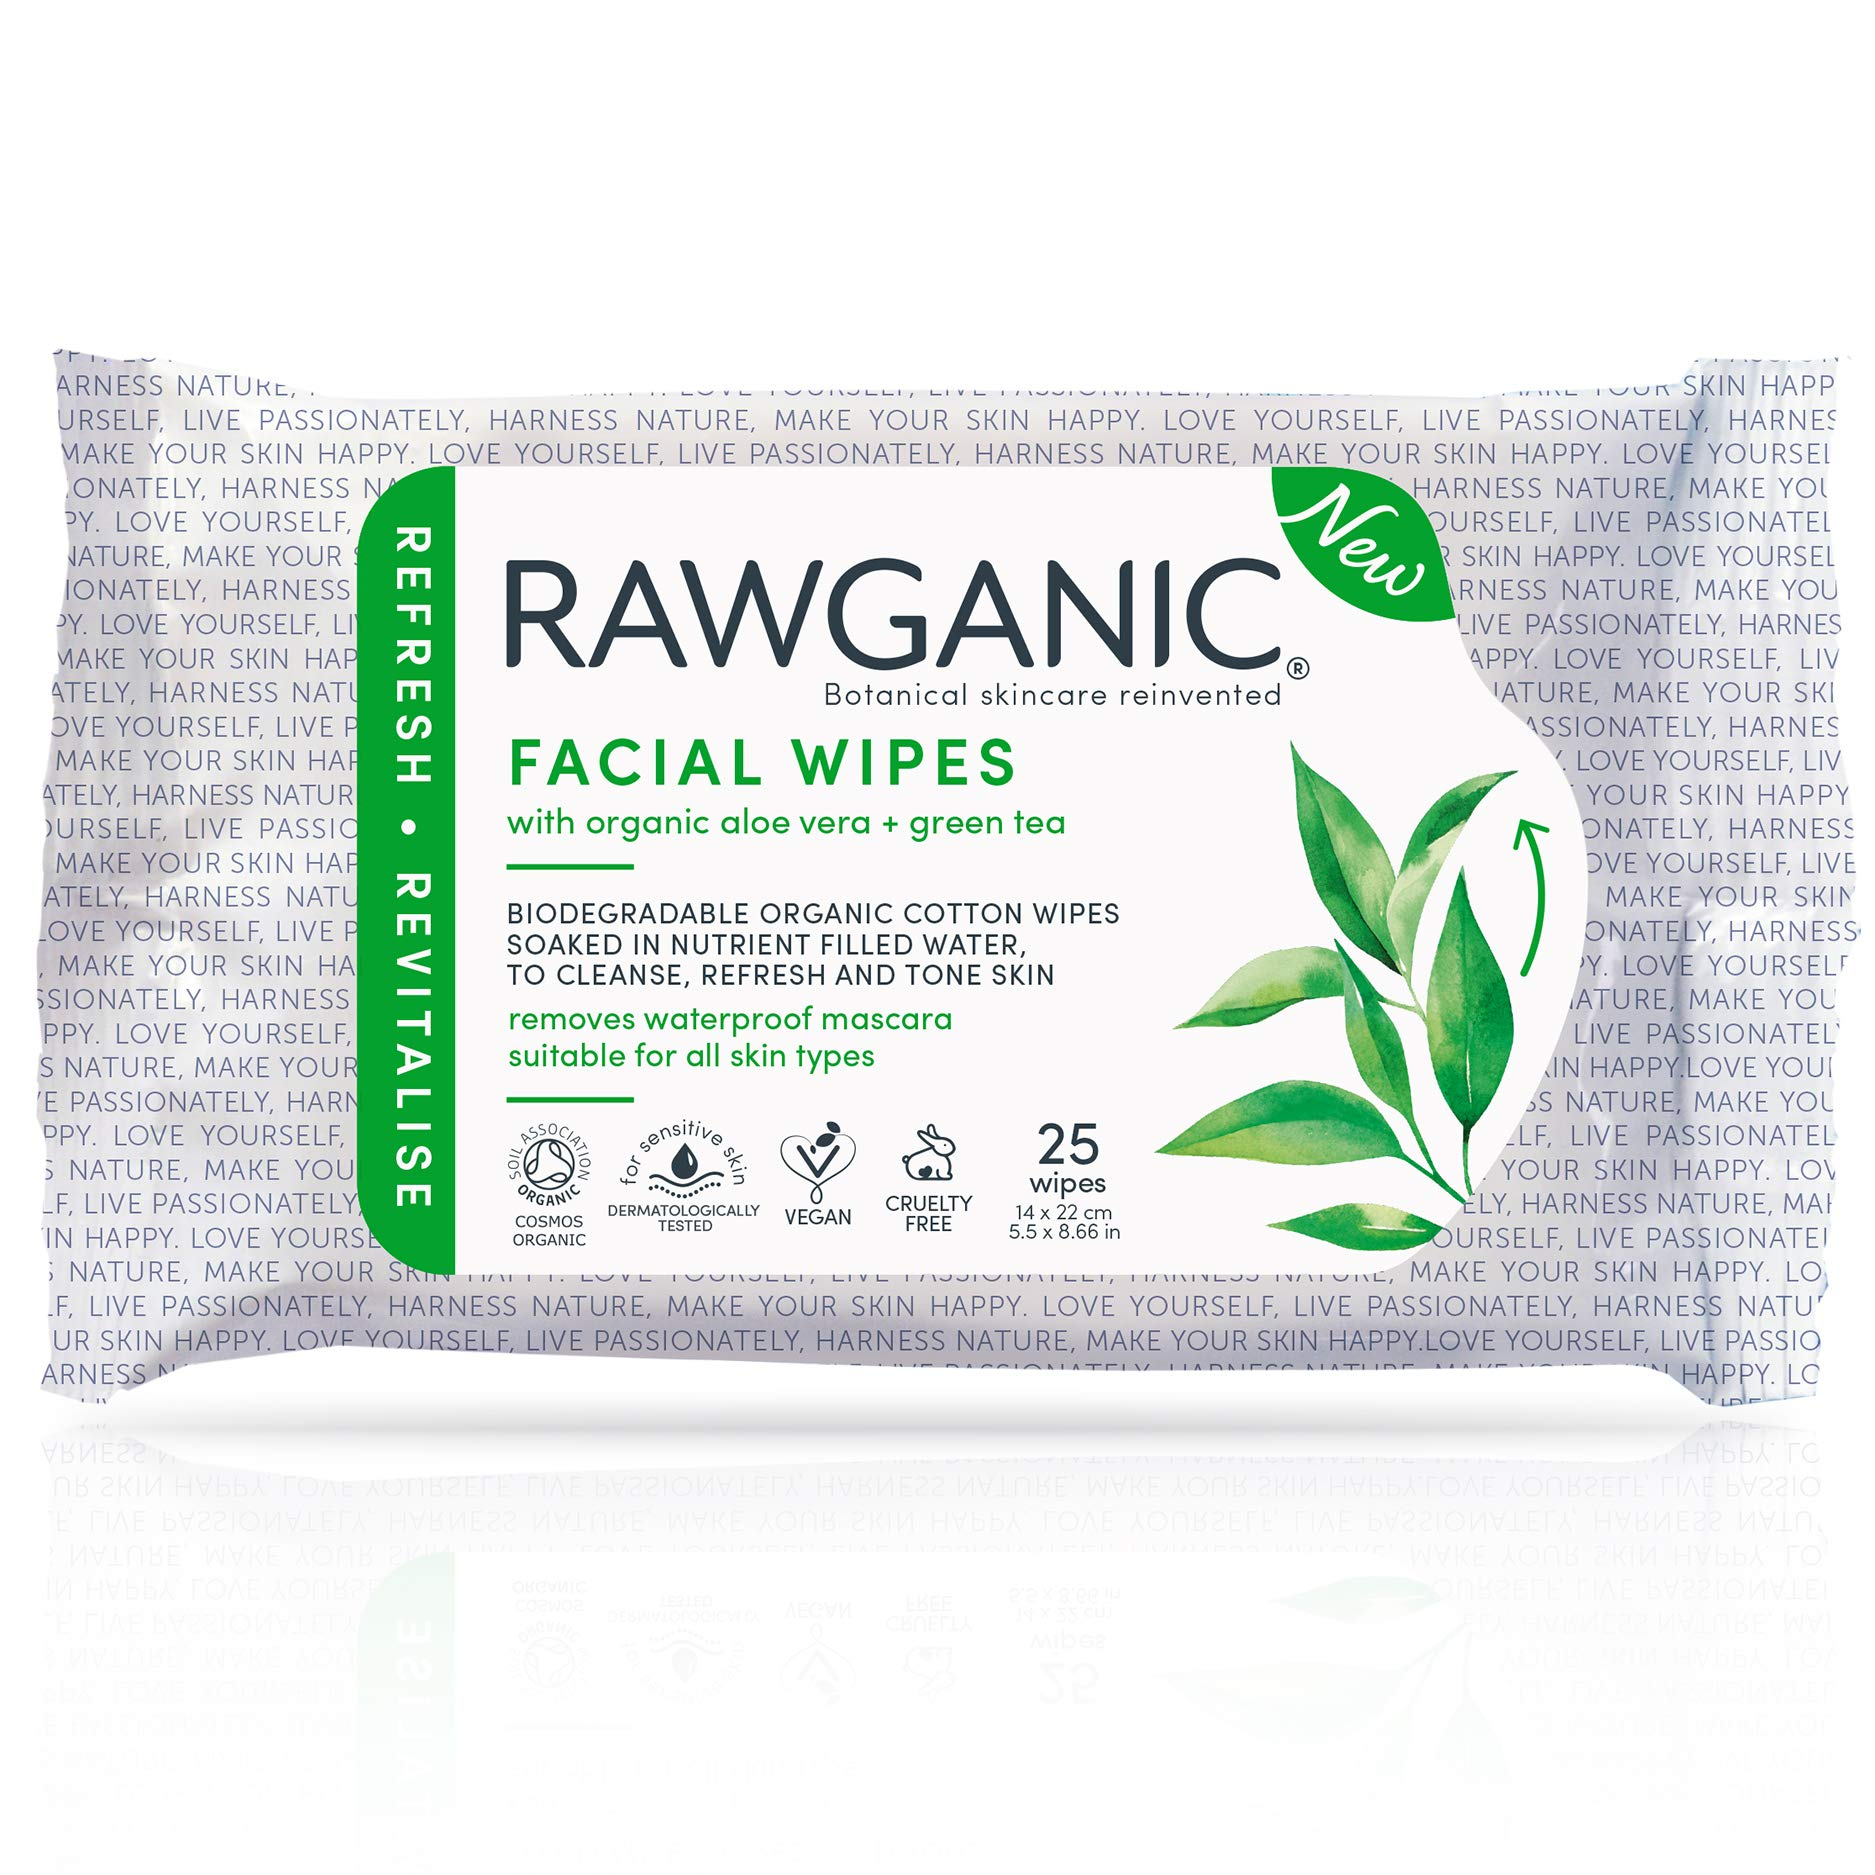 RAWGANIC Refreshing Facial Wipes, Fragrance-free Biodegradable Organic Cotton Wipes with Aloe Vera and Green Tea (25-Count), Packaging May Vary